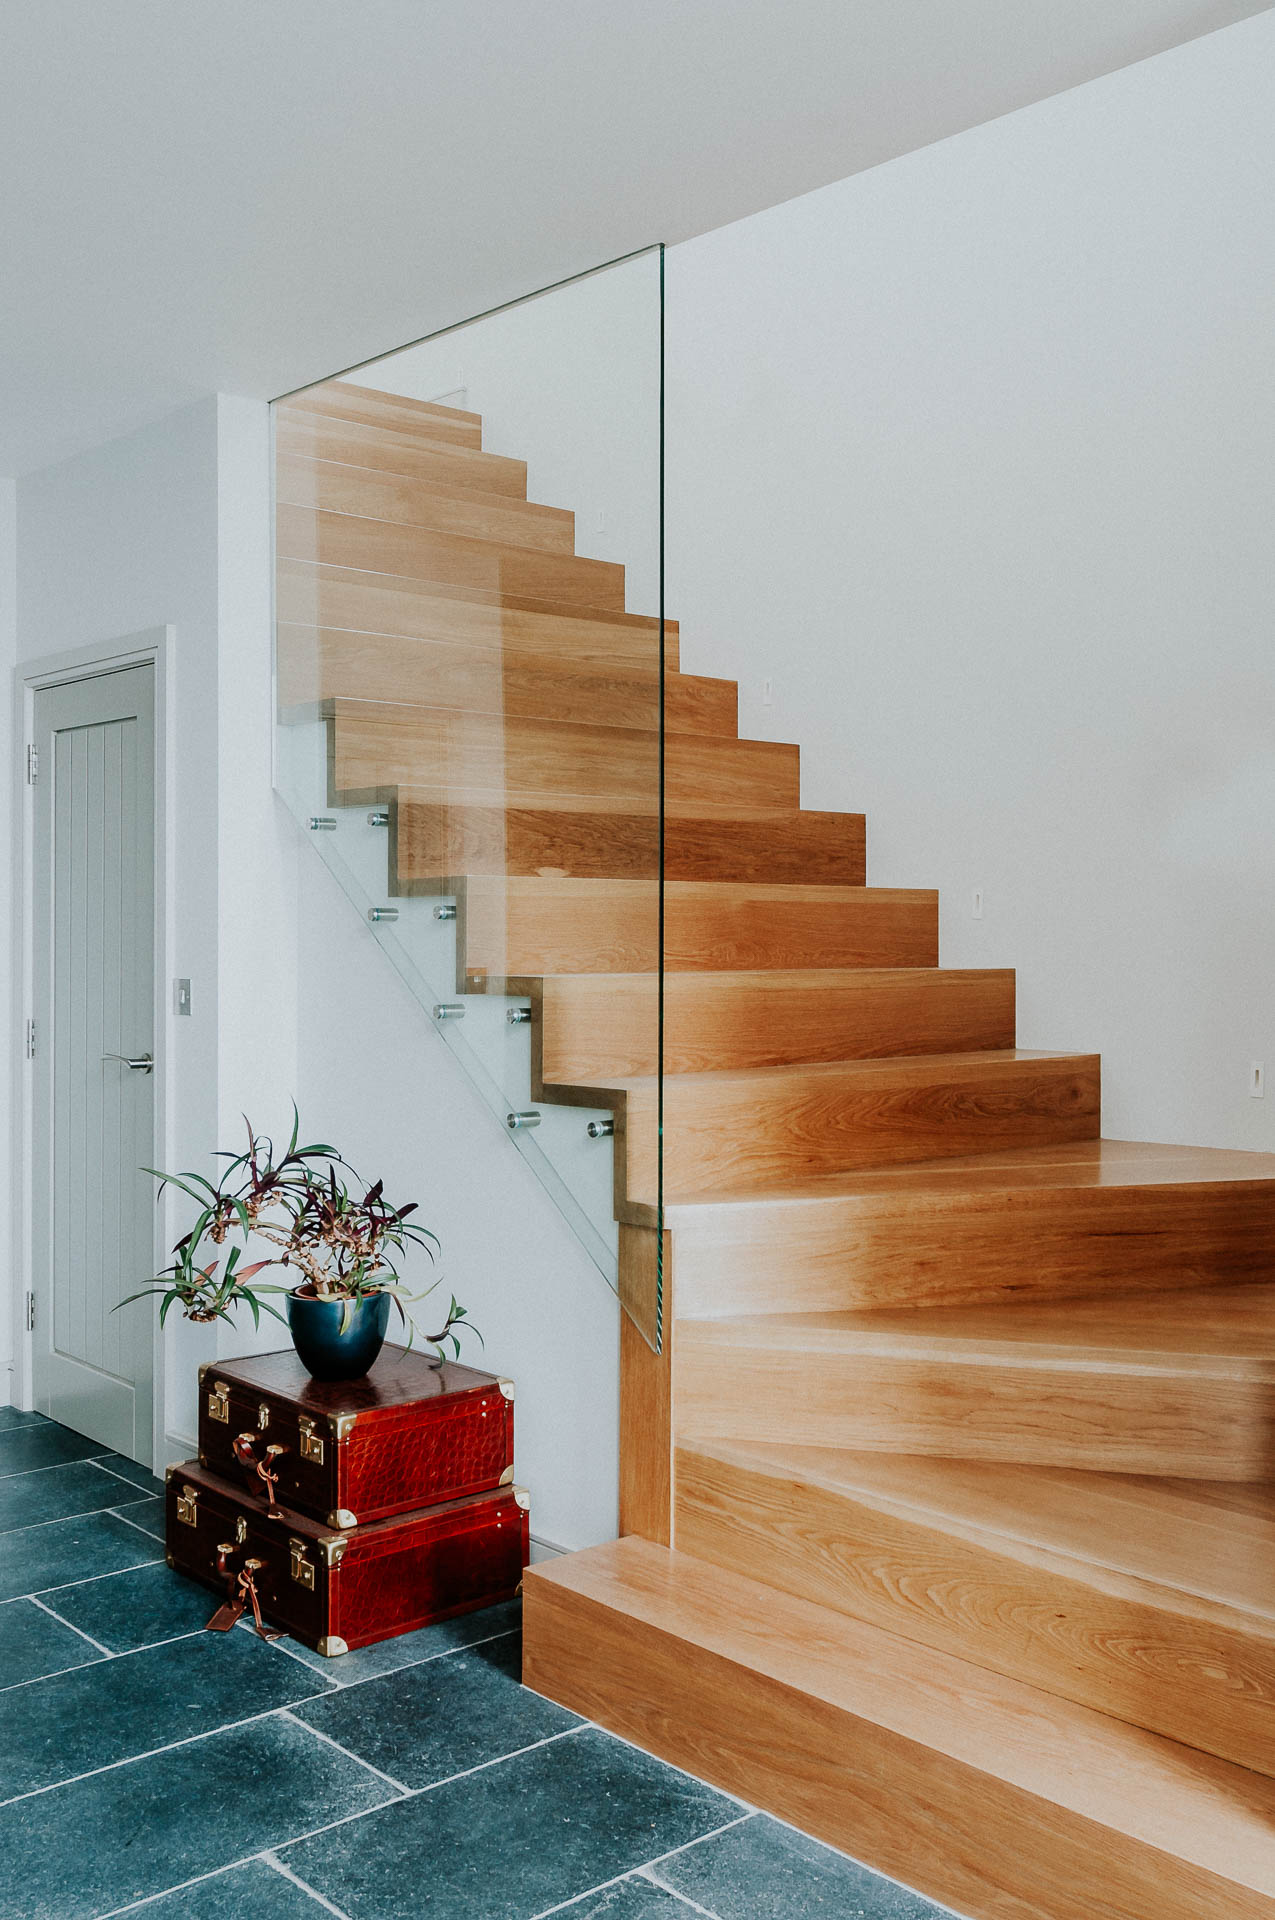 bespoke oak staircase with glass balustrade by Andrew Lethbridge Associates